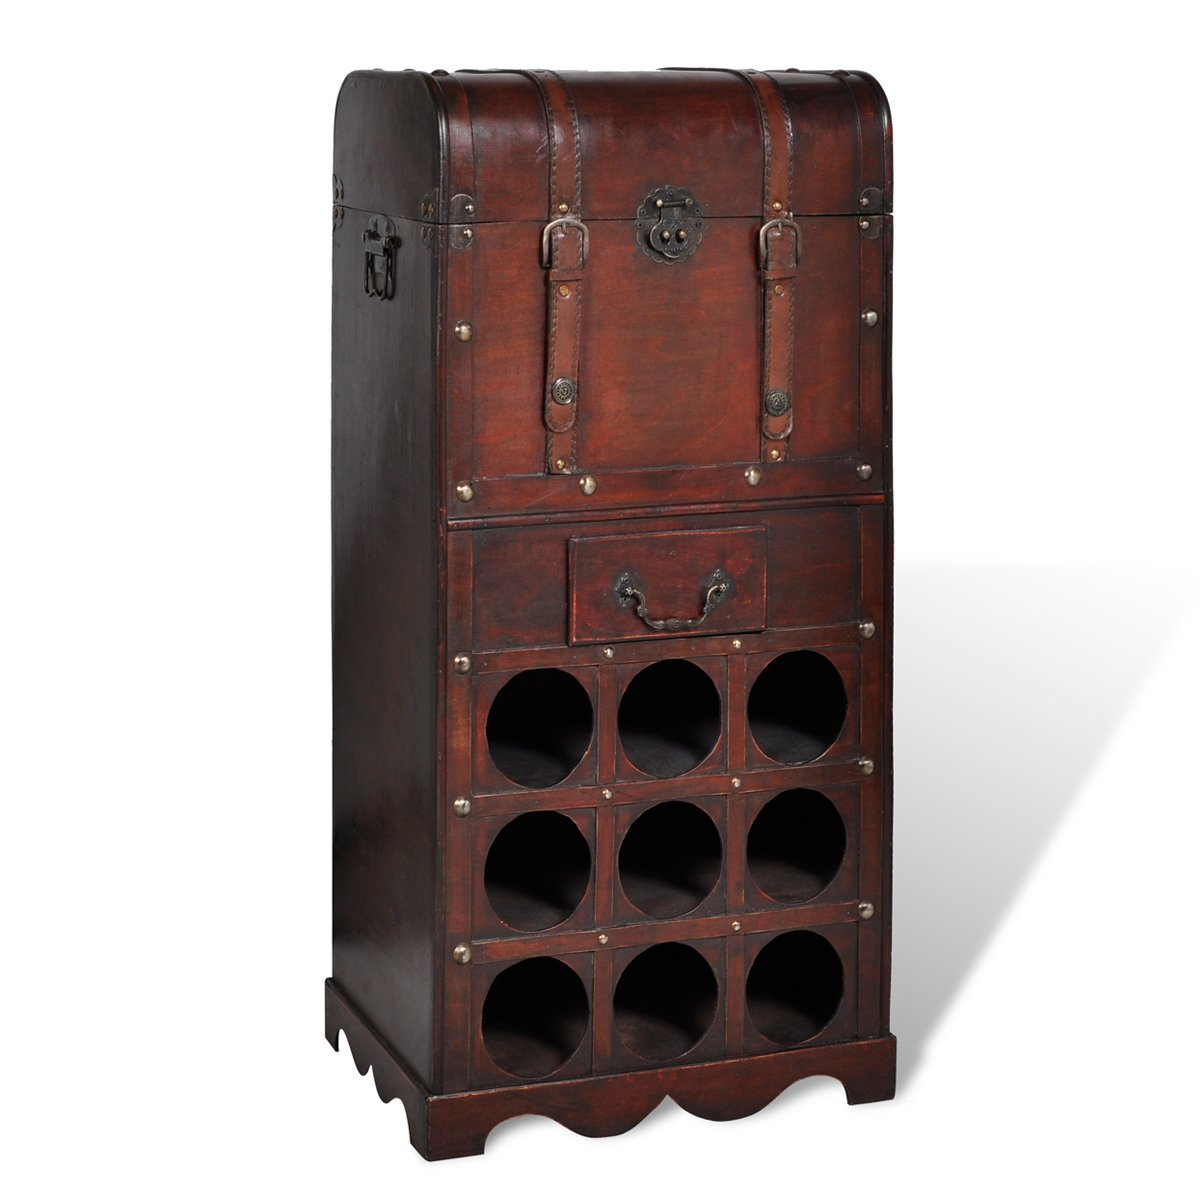 wooden wine rack for 9 bottles storage trunk with drawer amazoncouk kitchen u0026 home - Wooden Wine Rack